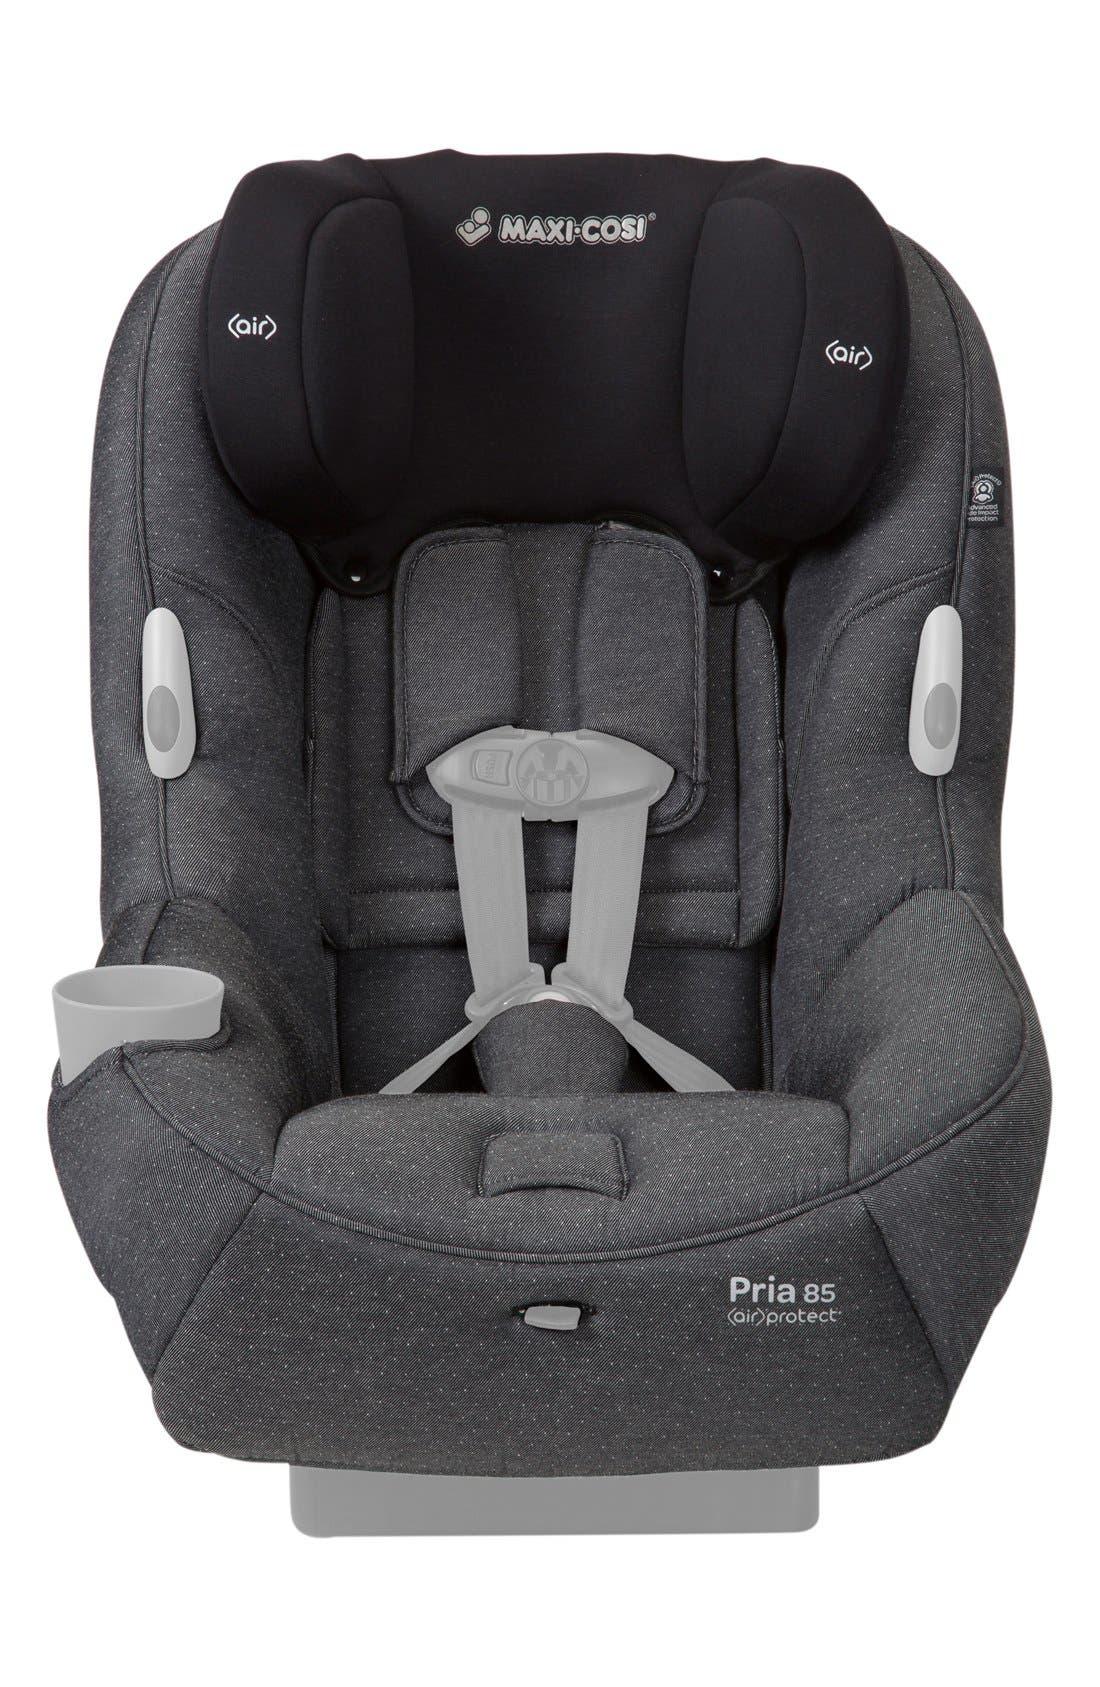 Infant MaxiCosi Seat Pad Fashion Kit For Pria(TM) 85 Car Seat